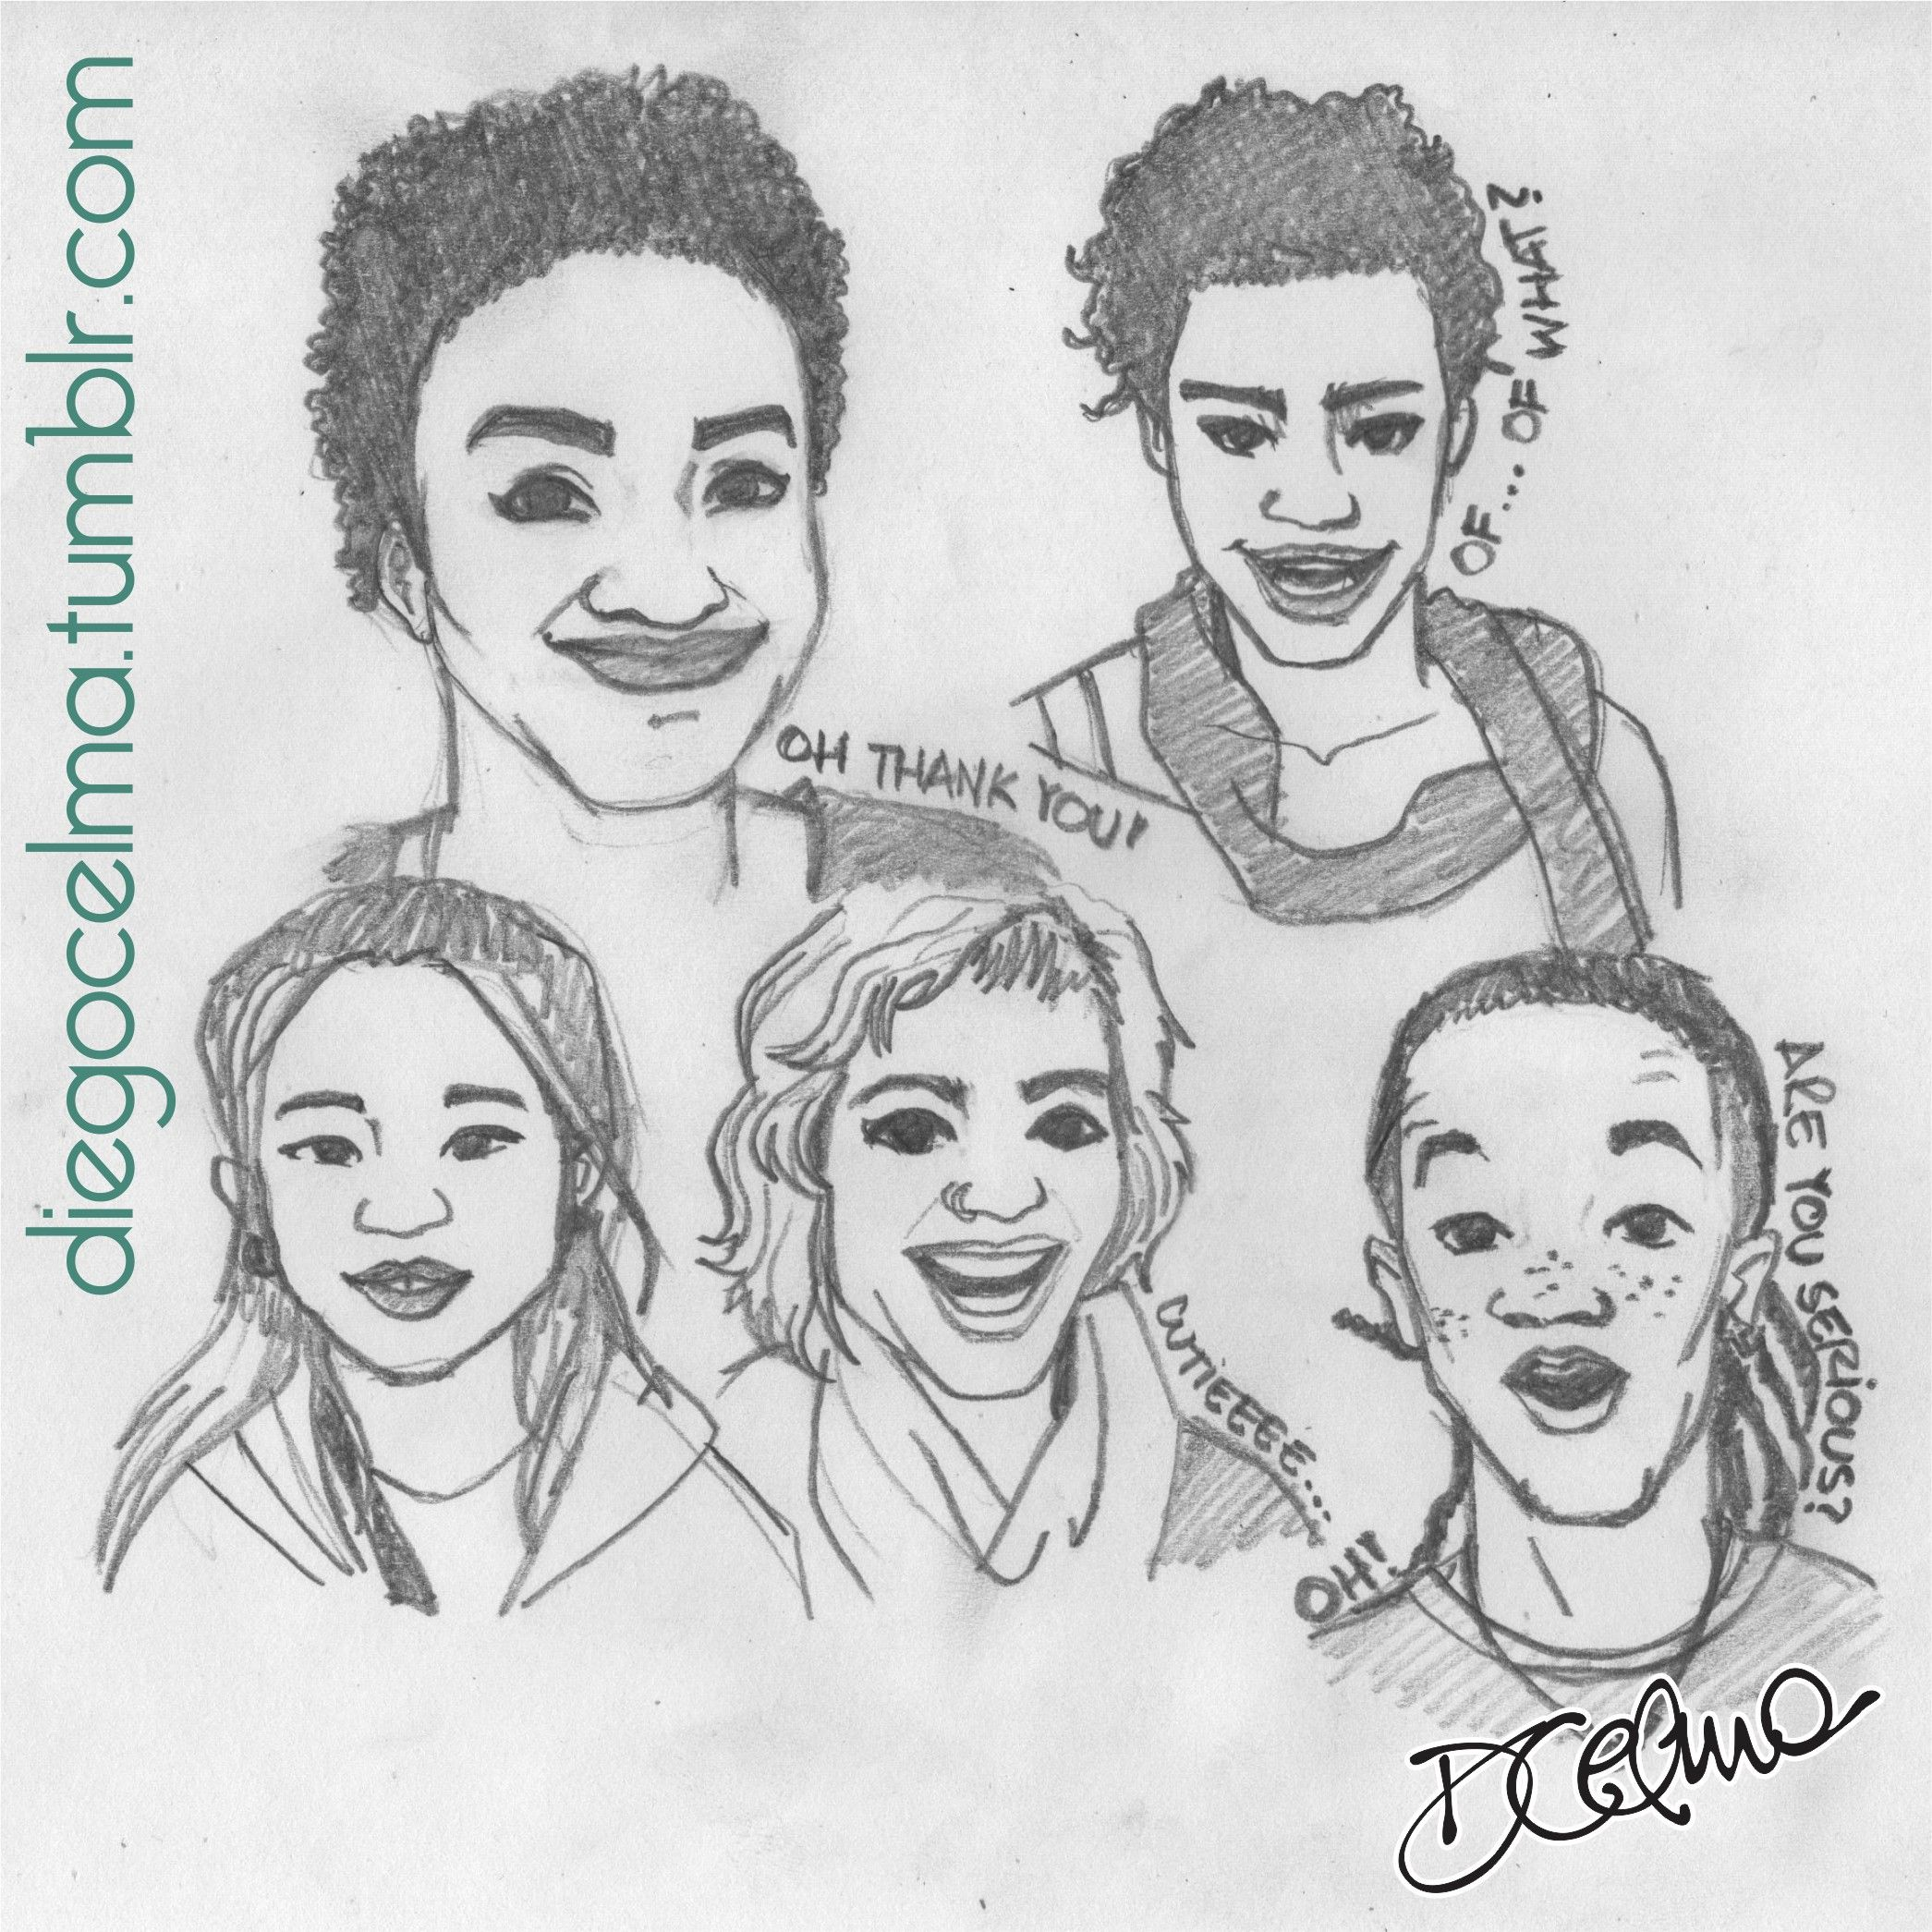 """Sketches inspired in the beautiful work of 18-year-old student Shea Glover, from Chicago. She posed people in front of her camera and then told them """"I'm taking pictures of things I find beautiful"""" https://www.youtube.com/watch?v=aW8BDgLpZkI #sketches #sketch #illustration #drawing #faces #facialexpressions #expressions #beautiful #SheaGlover #smile #beauty #socialexperiment #project https://www.facebook.com/diegocelmailustrador/"""